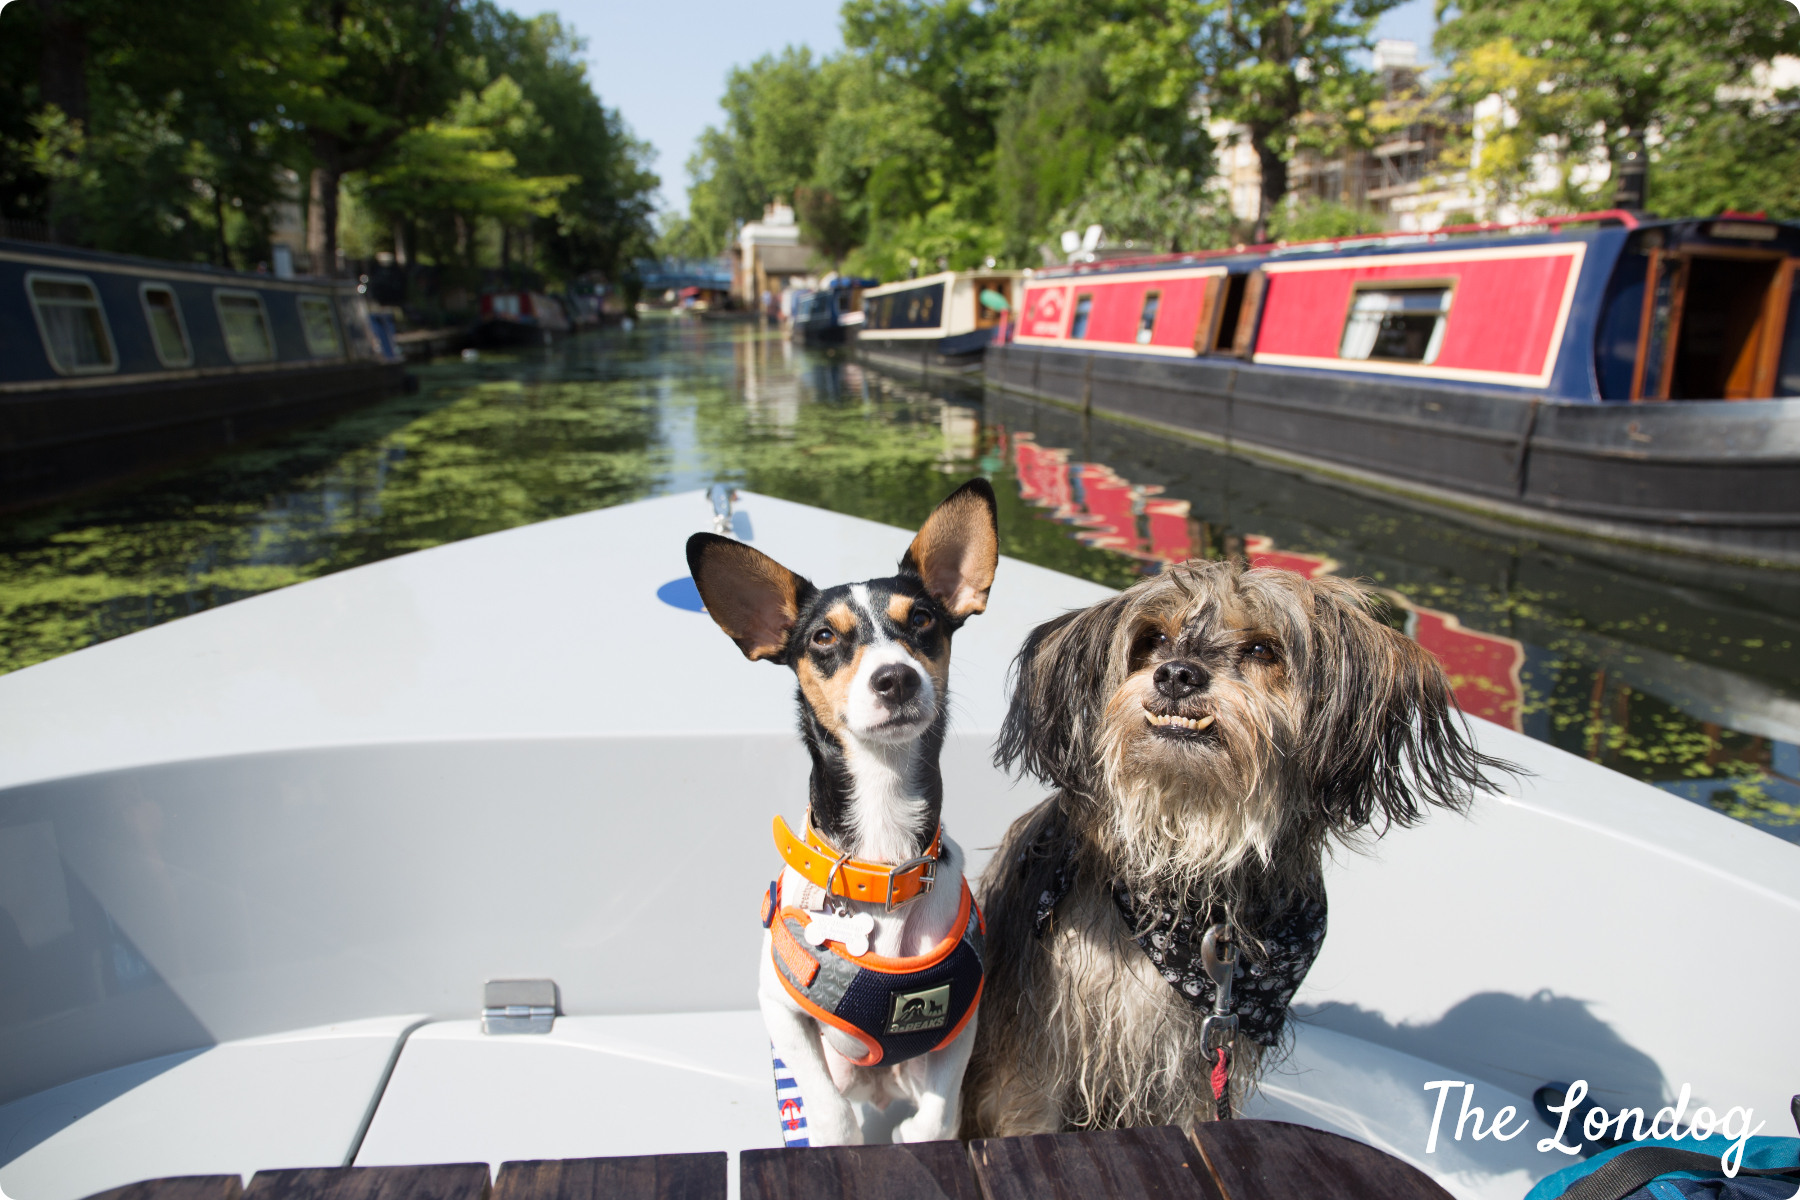 Dogs on dog-friendly boat on Regents Canal in London